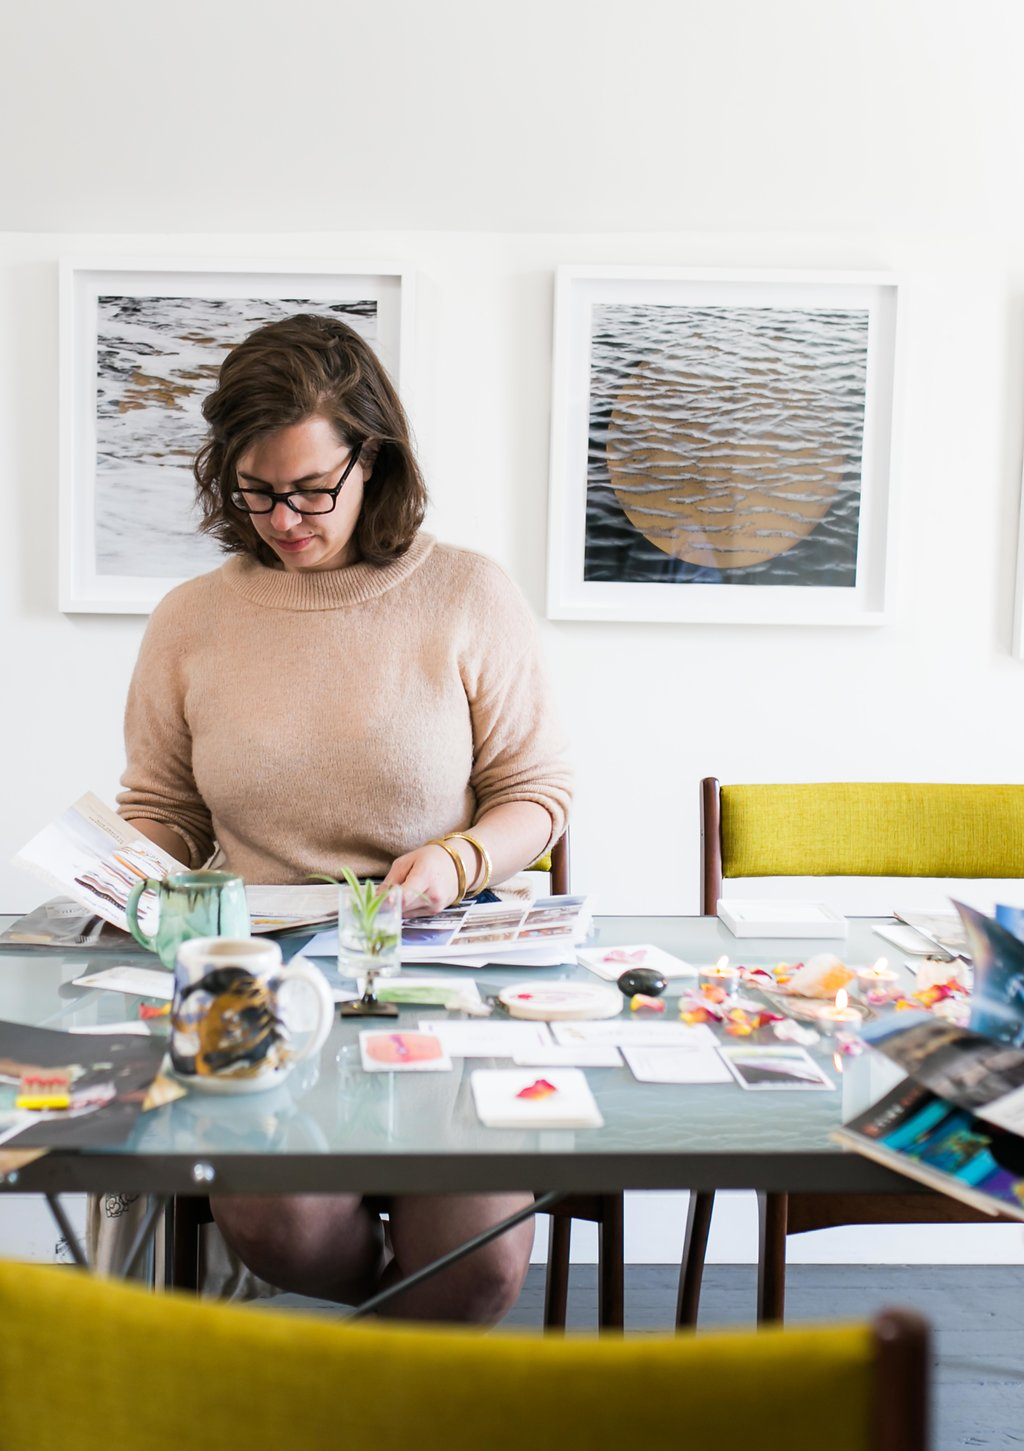 Hint: It's not about the art. - You do not need to be an artist or particularly creative to benefit from Art Therapy, as long as you're open to engaging and learning more about yourself through the creative process.The goal is not to make something beautiful, but to get your intuition's guidance on your questions.